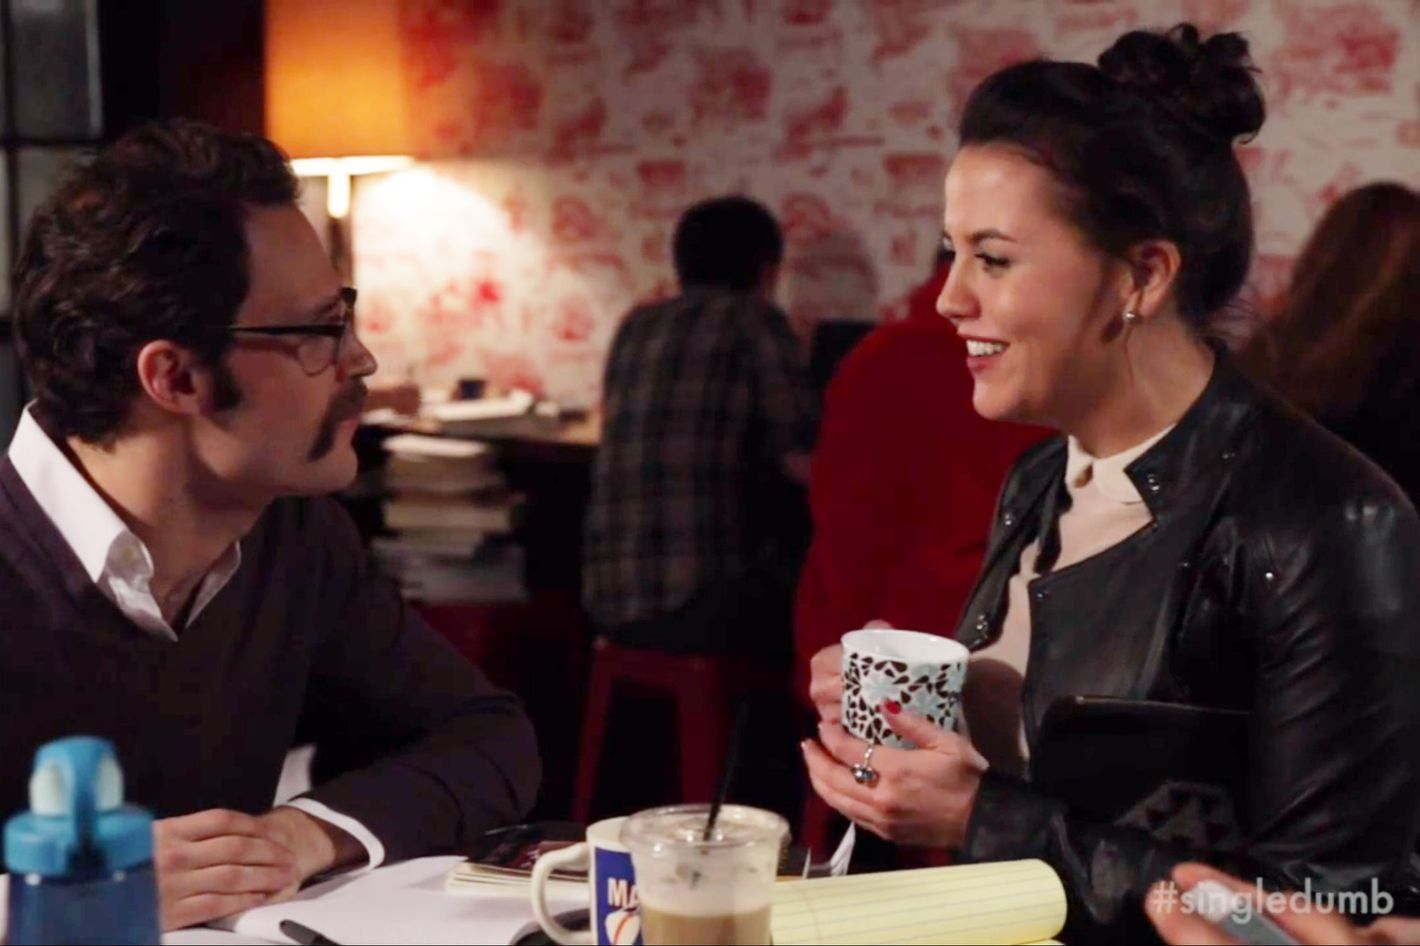 12 Guys Share Hilariously Awful First Date Stories 12 Guys Share Hilariously Awful First Date Stories new pictures